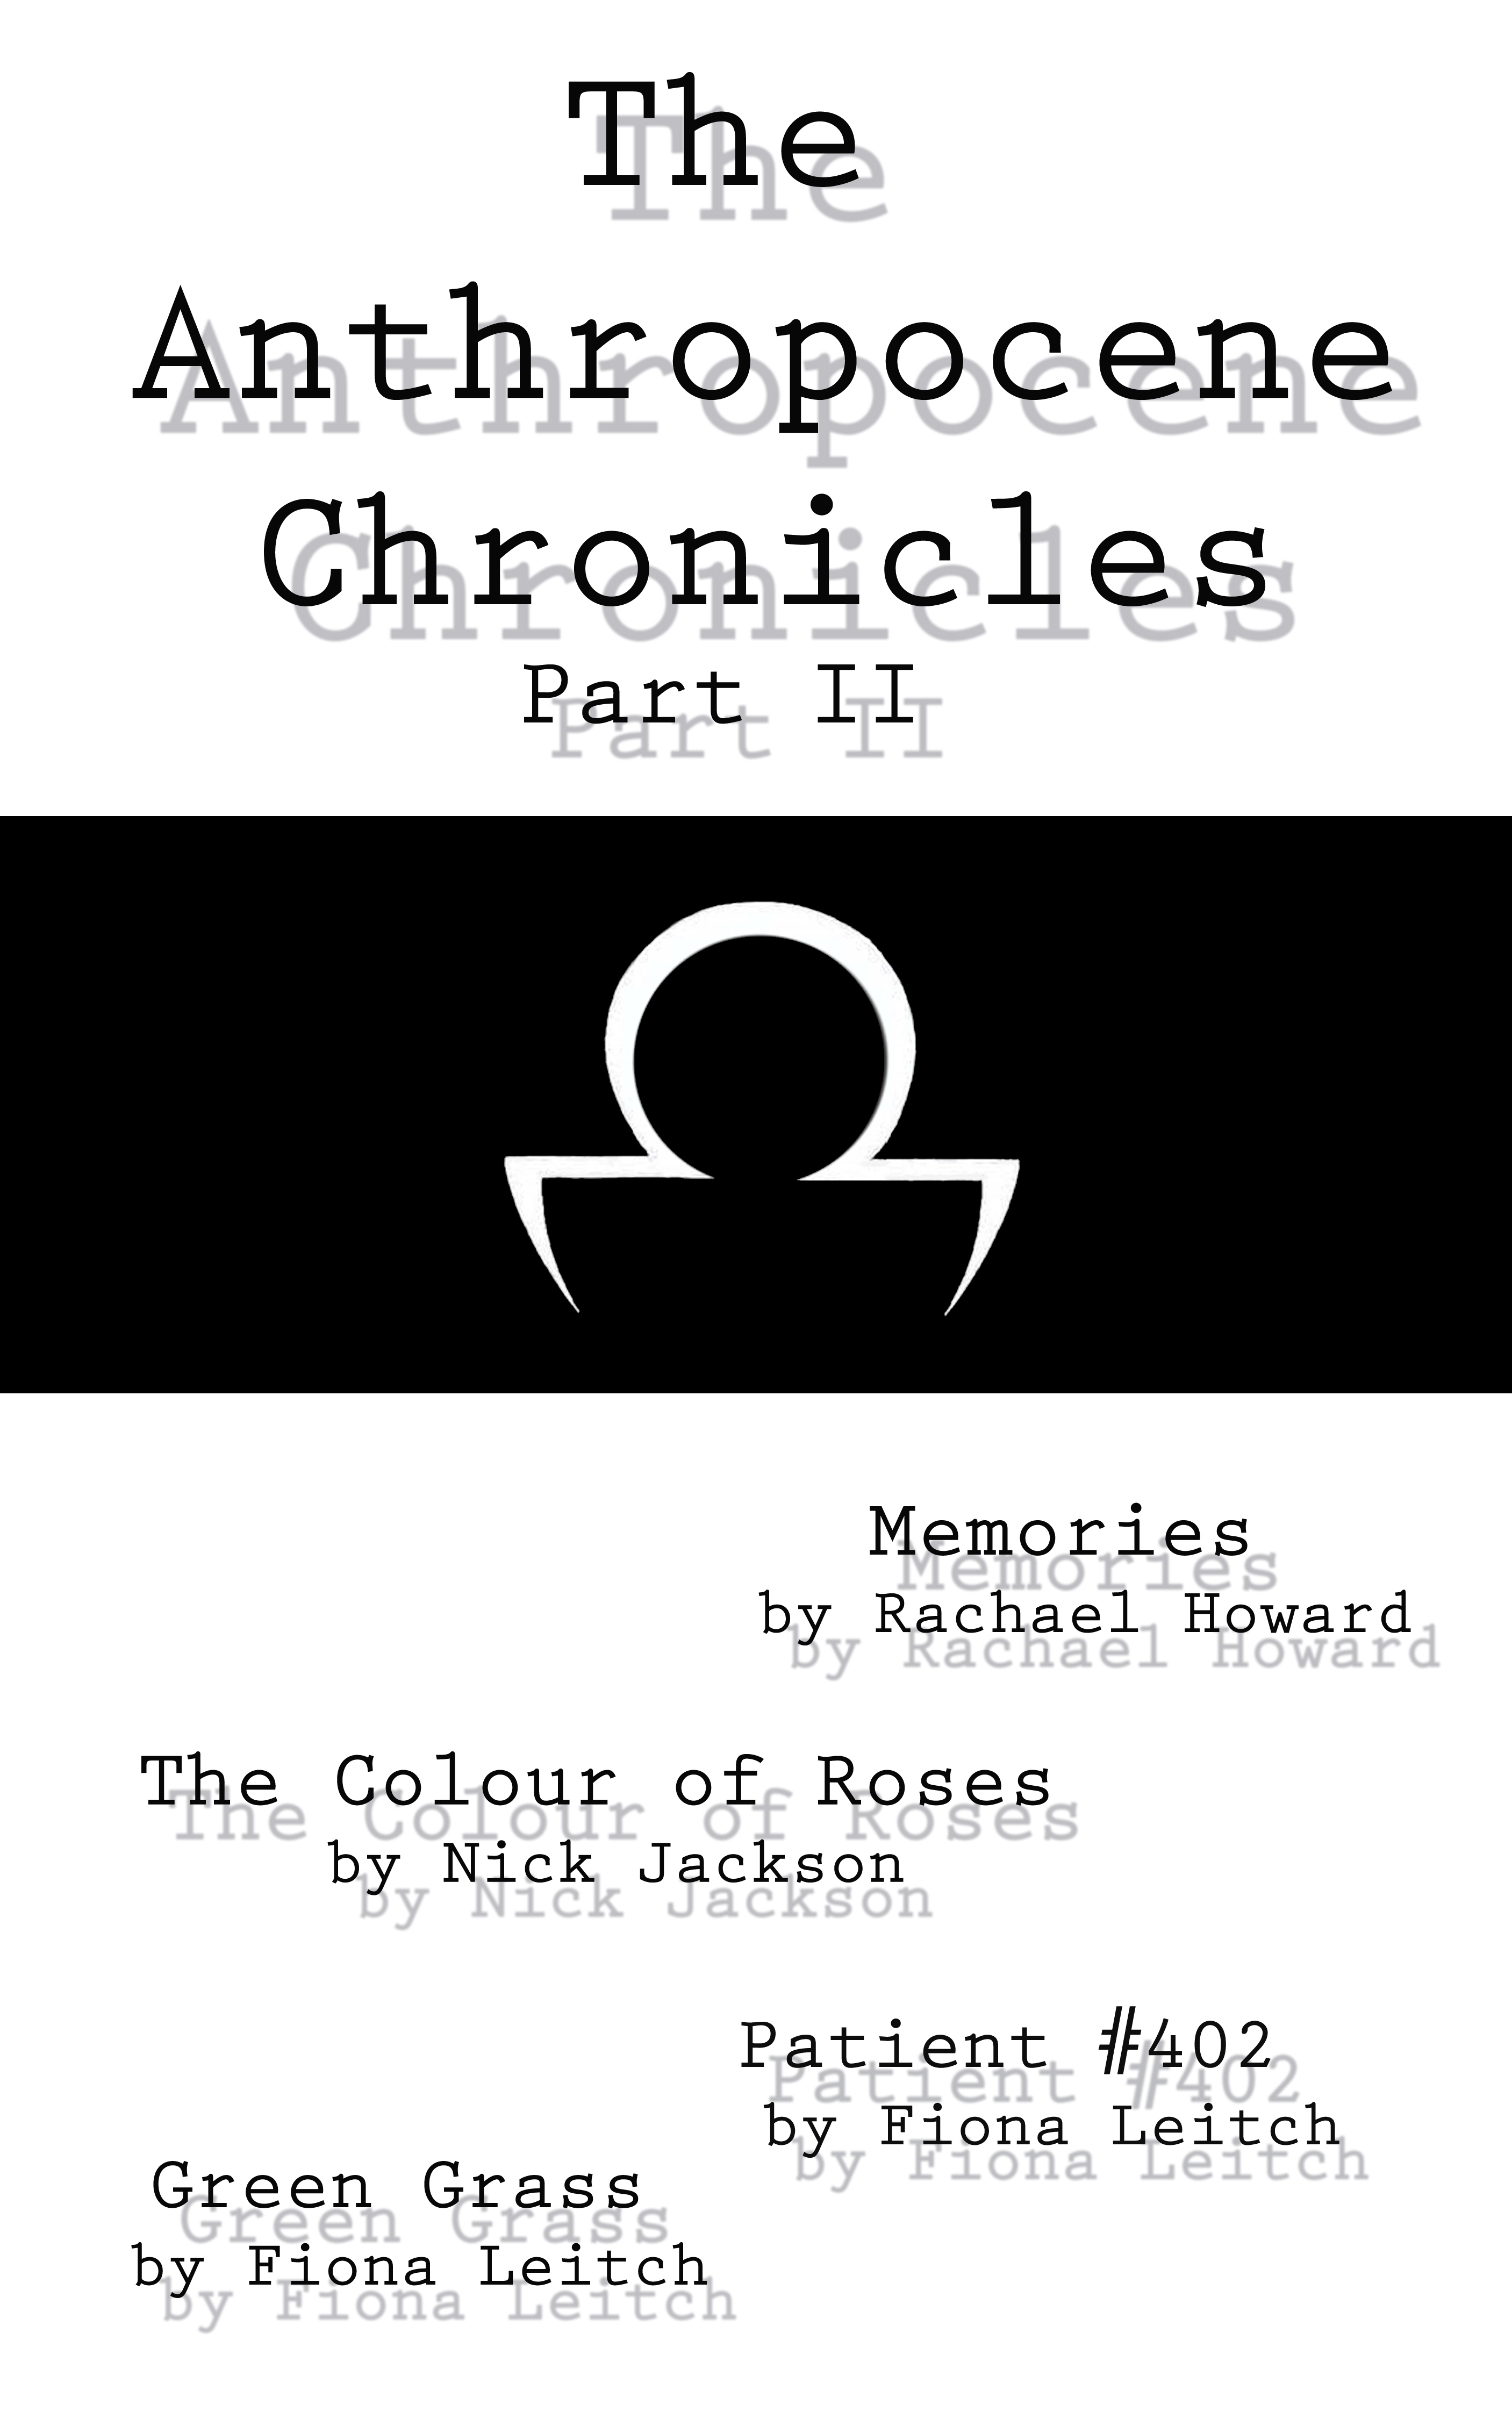 Book 2 Cover - Anthropocene Chronicles Part II